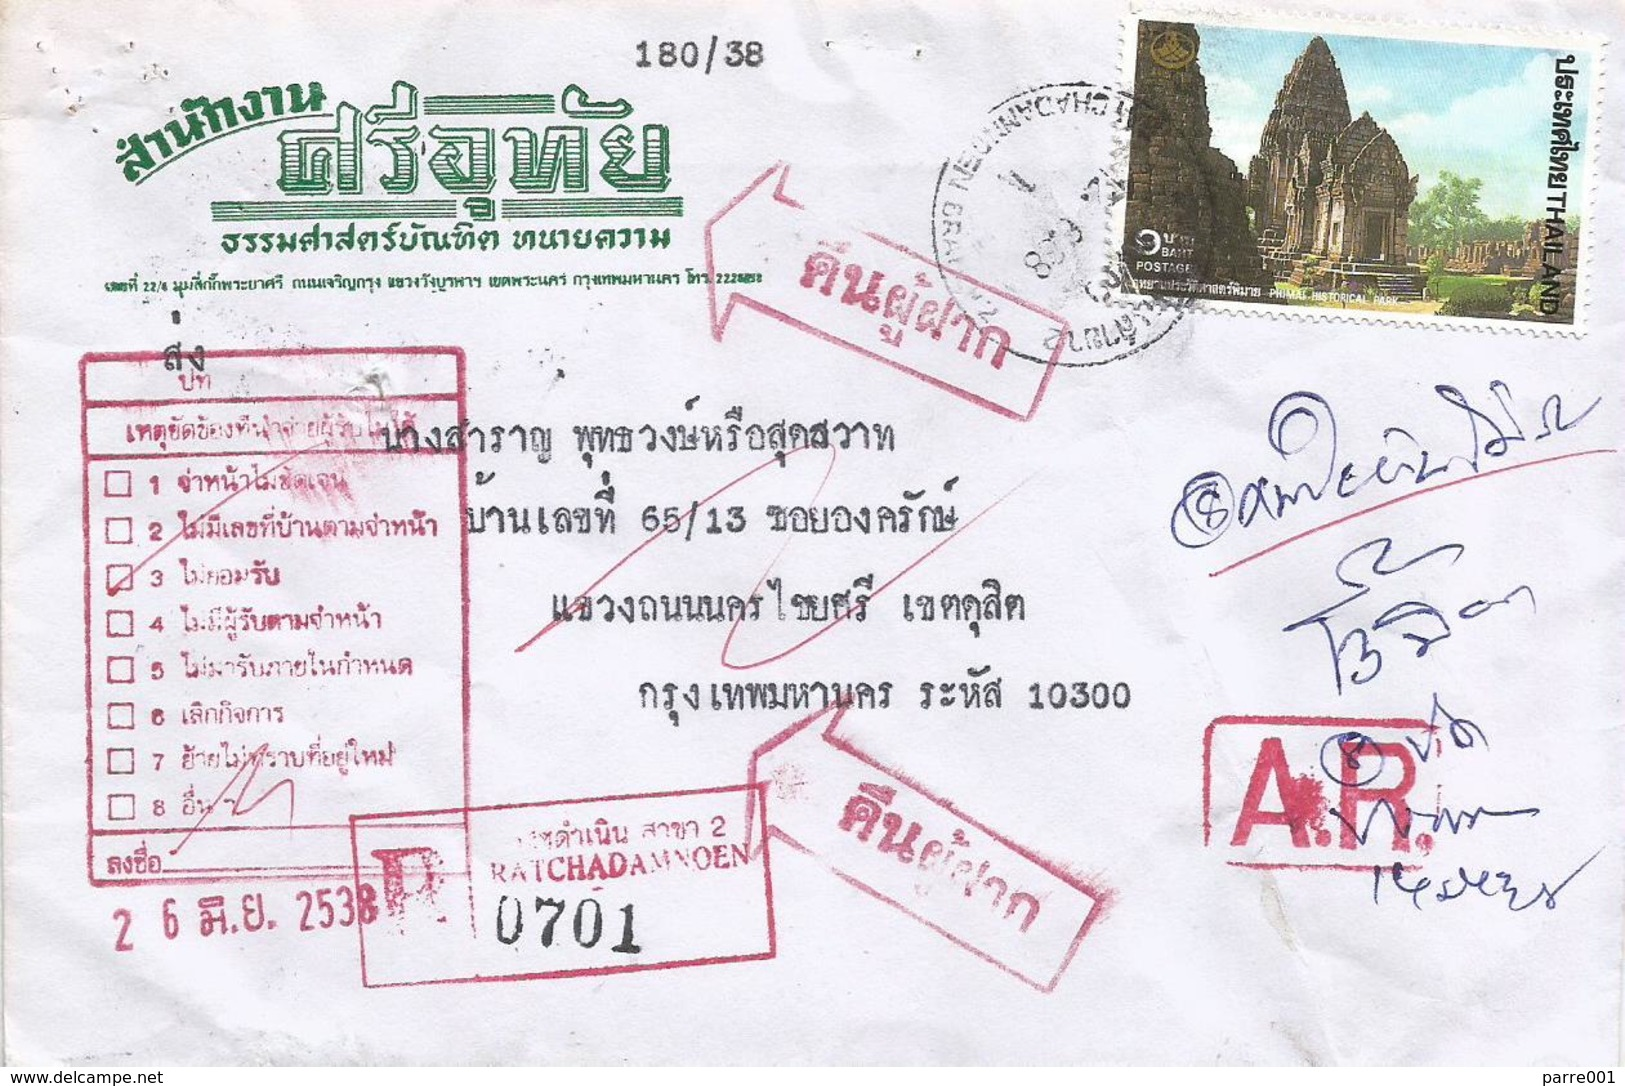 Thailand 1994 Ratchadamnoen Buddhism Temple Registered AR Advice Of Receipt Returned Domestic Cover - Buddhismus